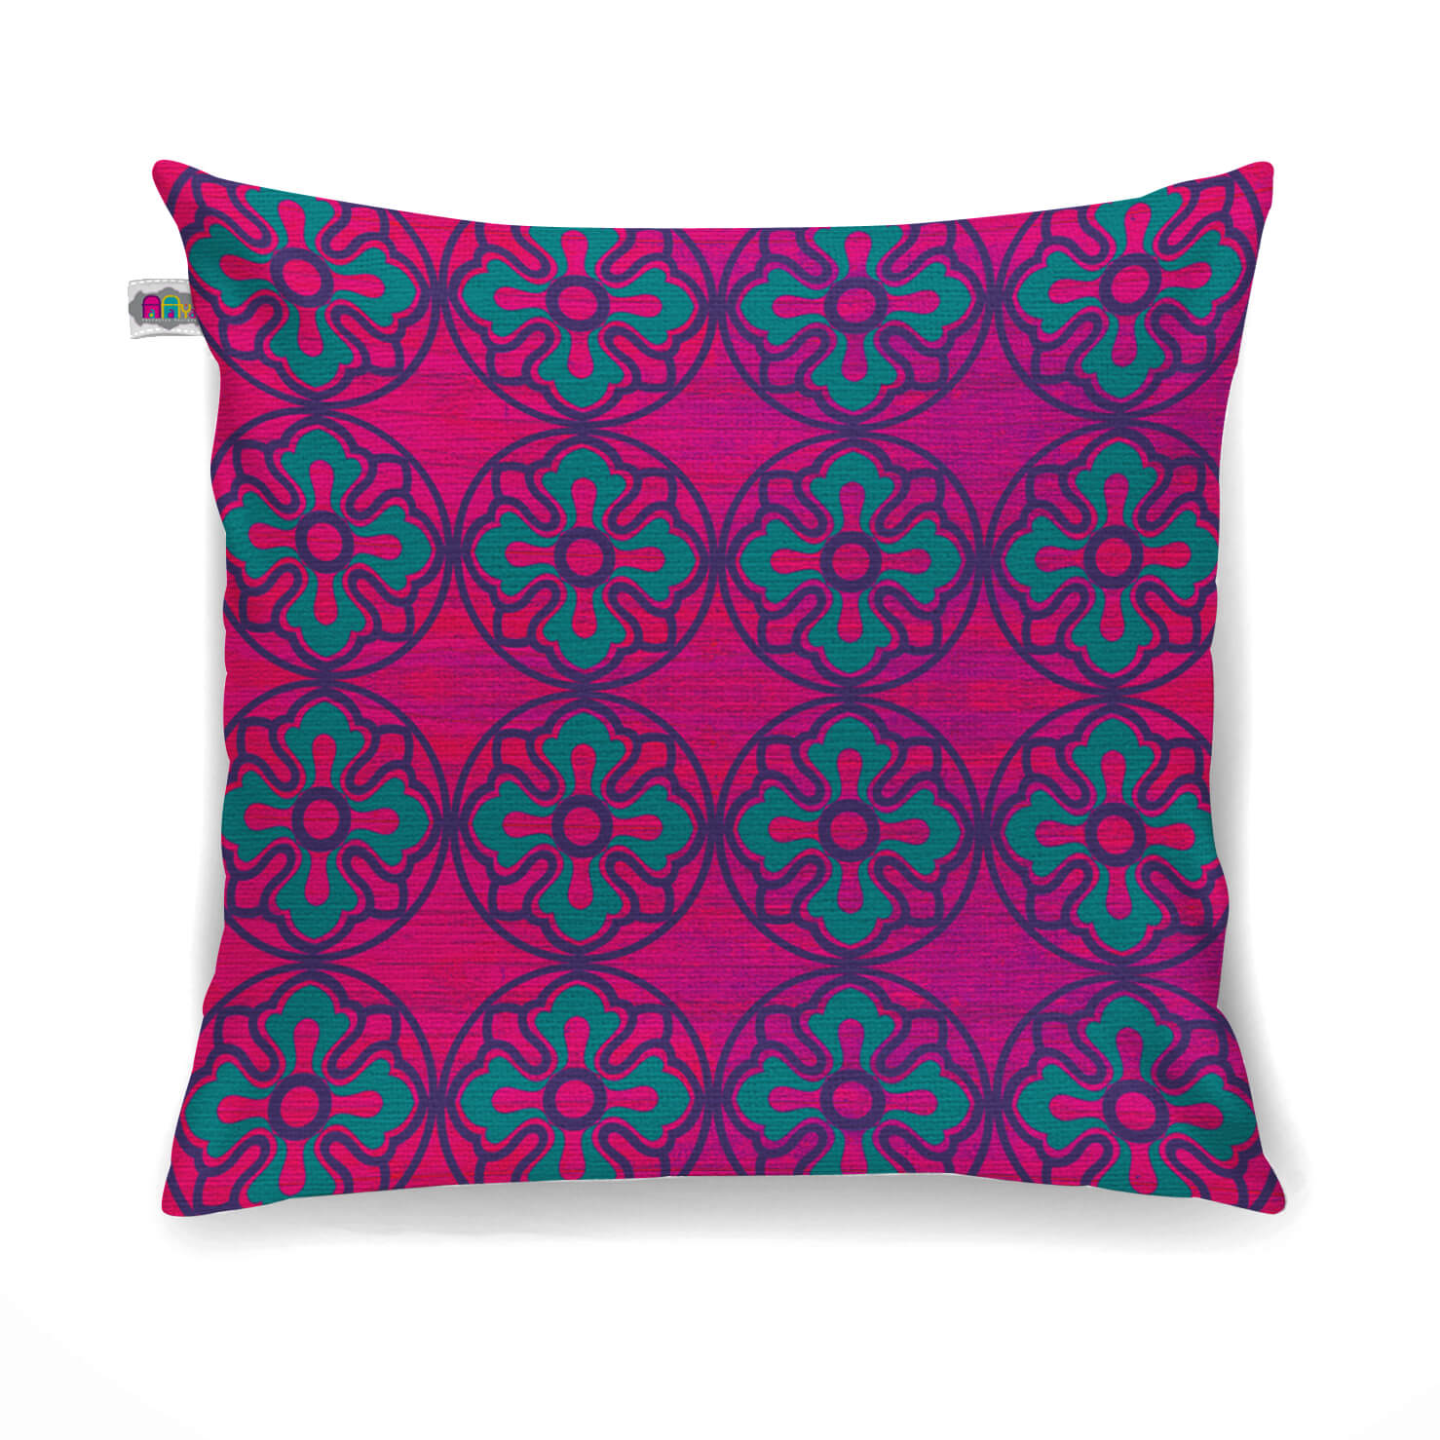 Sublime Flower Motif Cushion Cover Set of 2